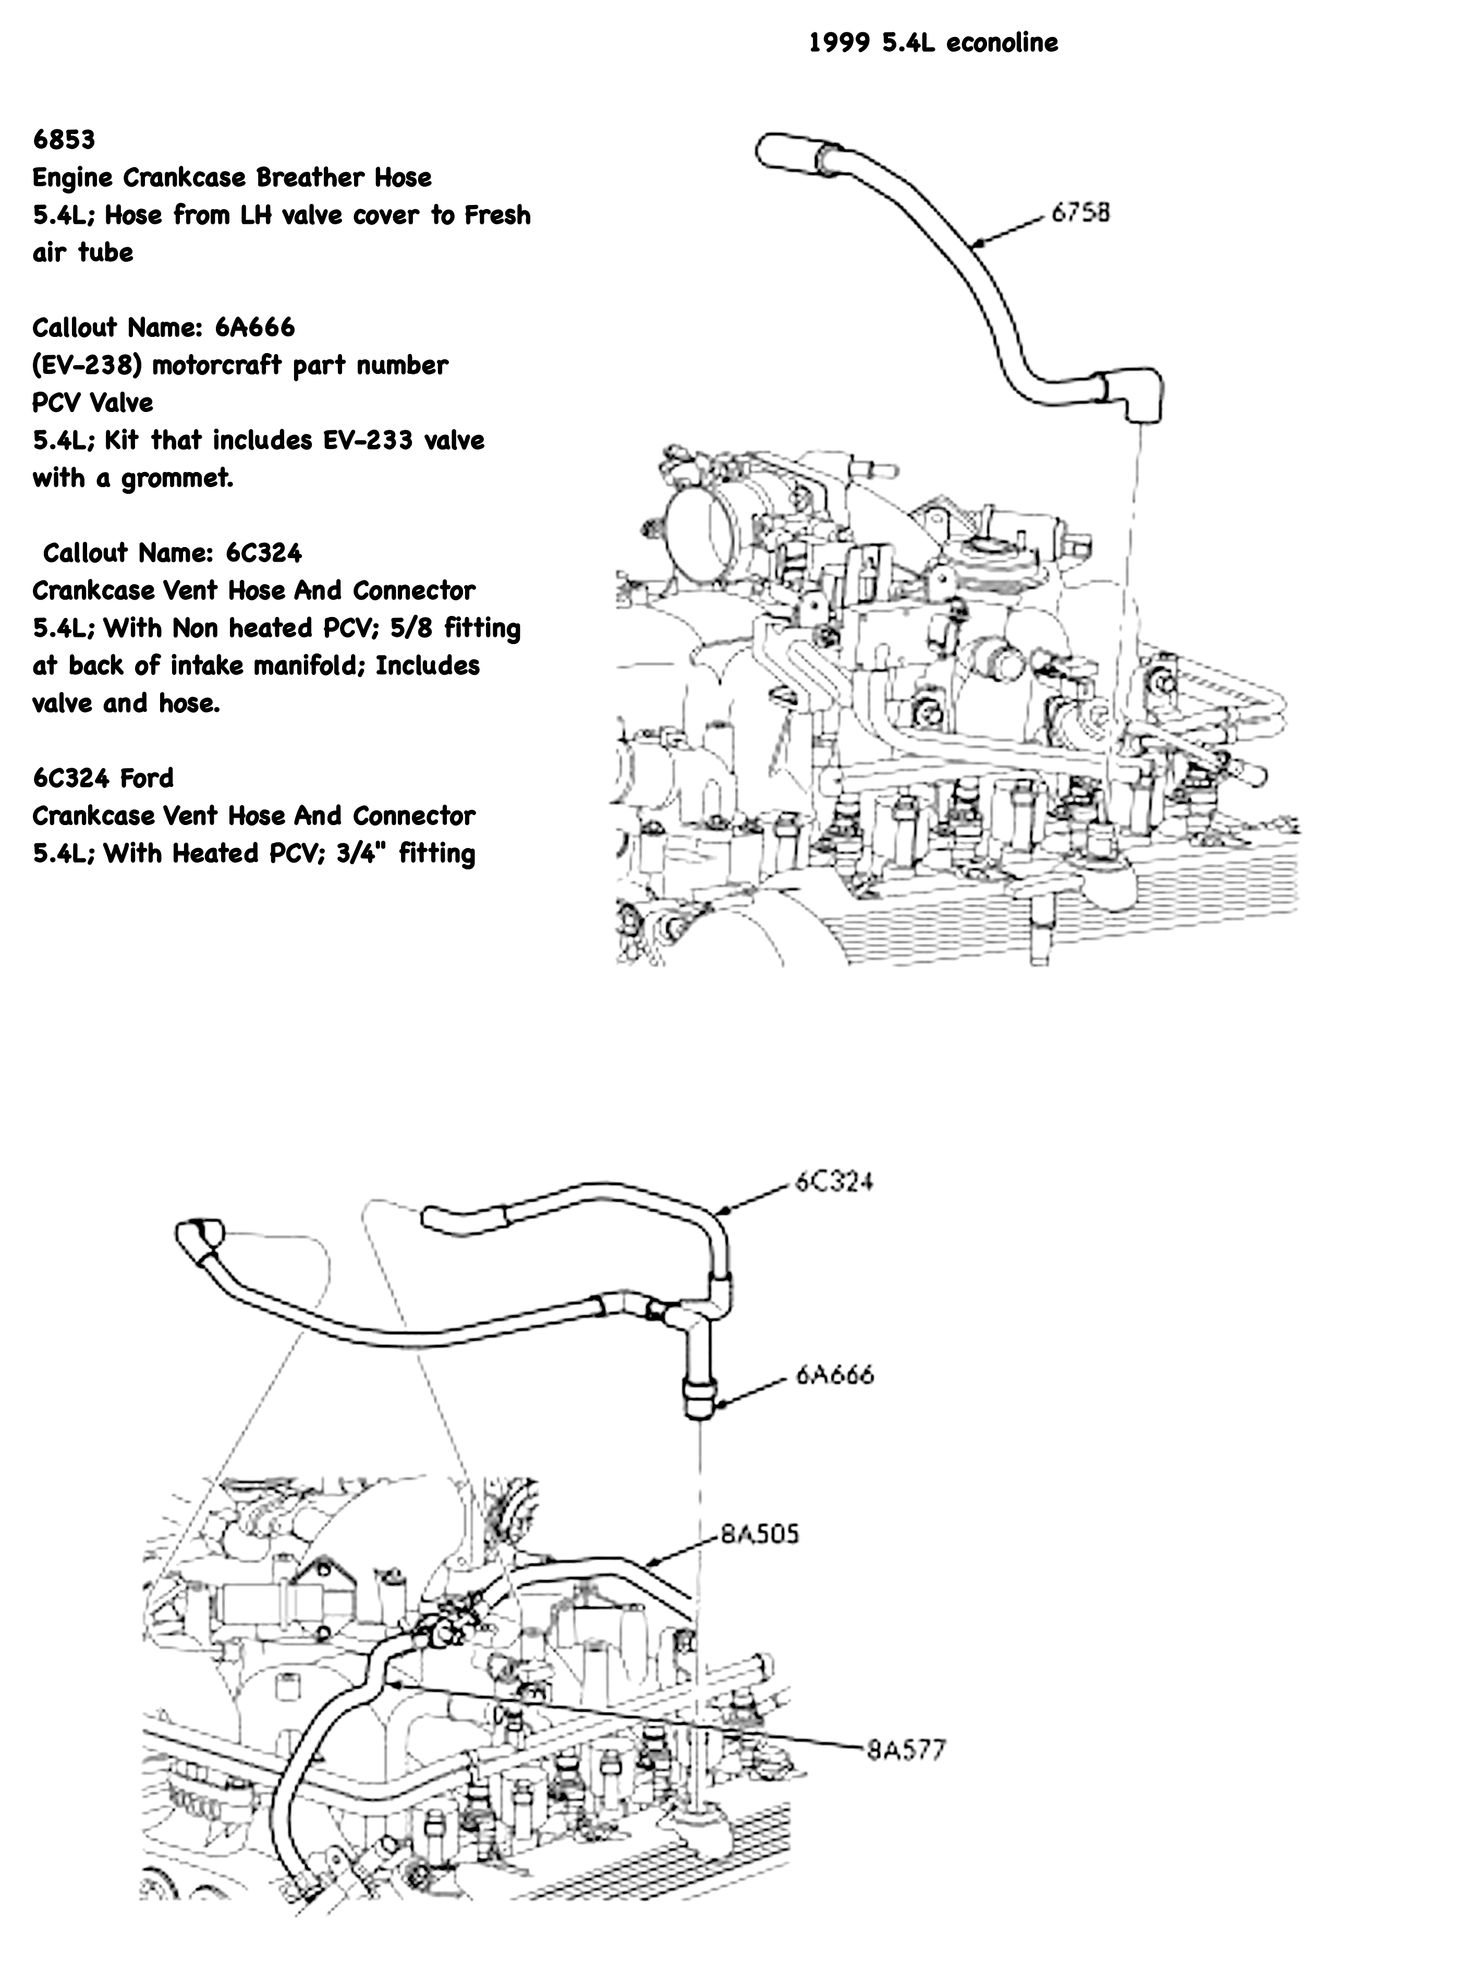 2006 F150 5 4l Intake Manifold Diagram Block And Schematic Diagrams \u2022 2003  Ford Focus Fuel Tank Hose Diagram 2000 Ford Focus Intake Manifold Diagram